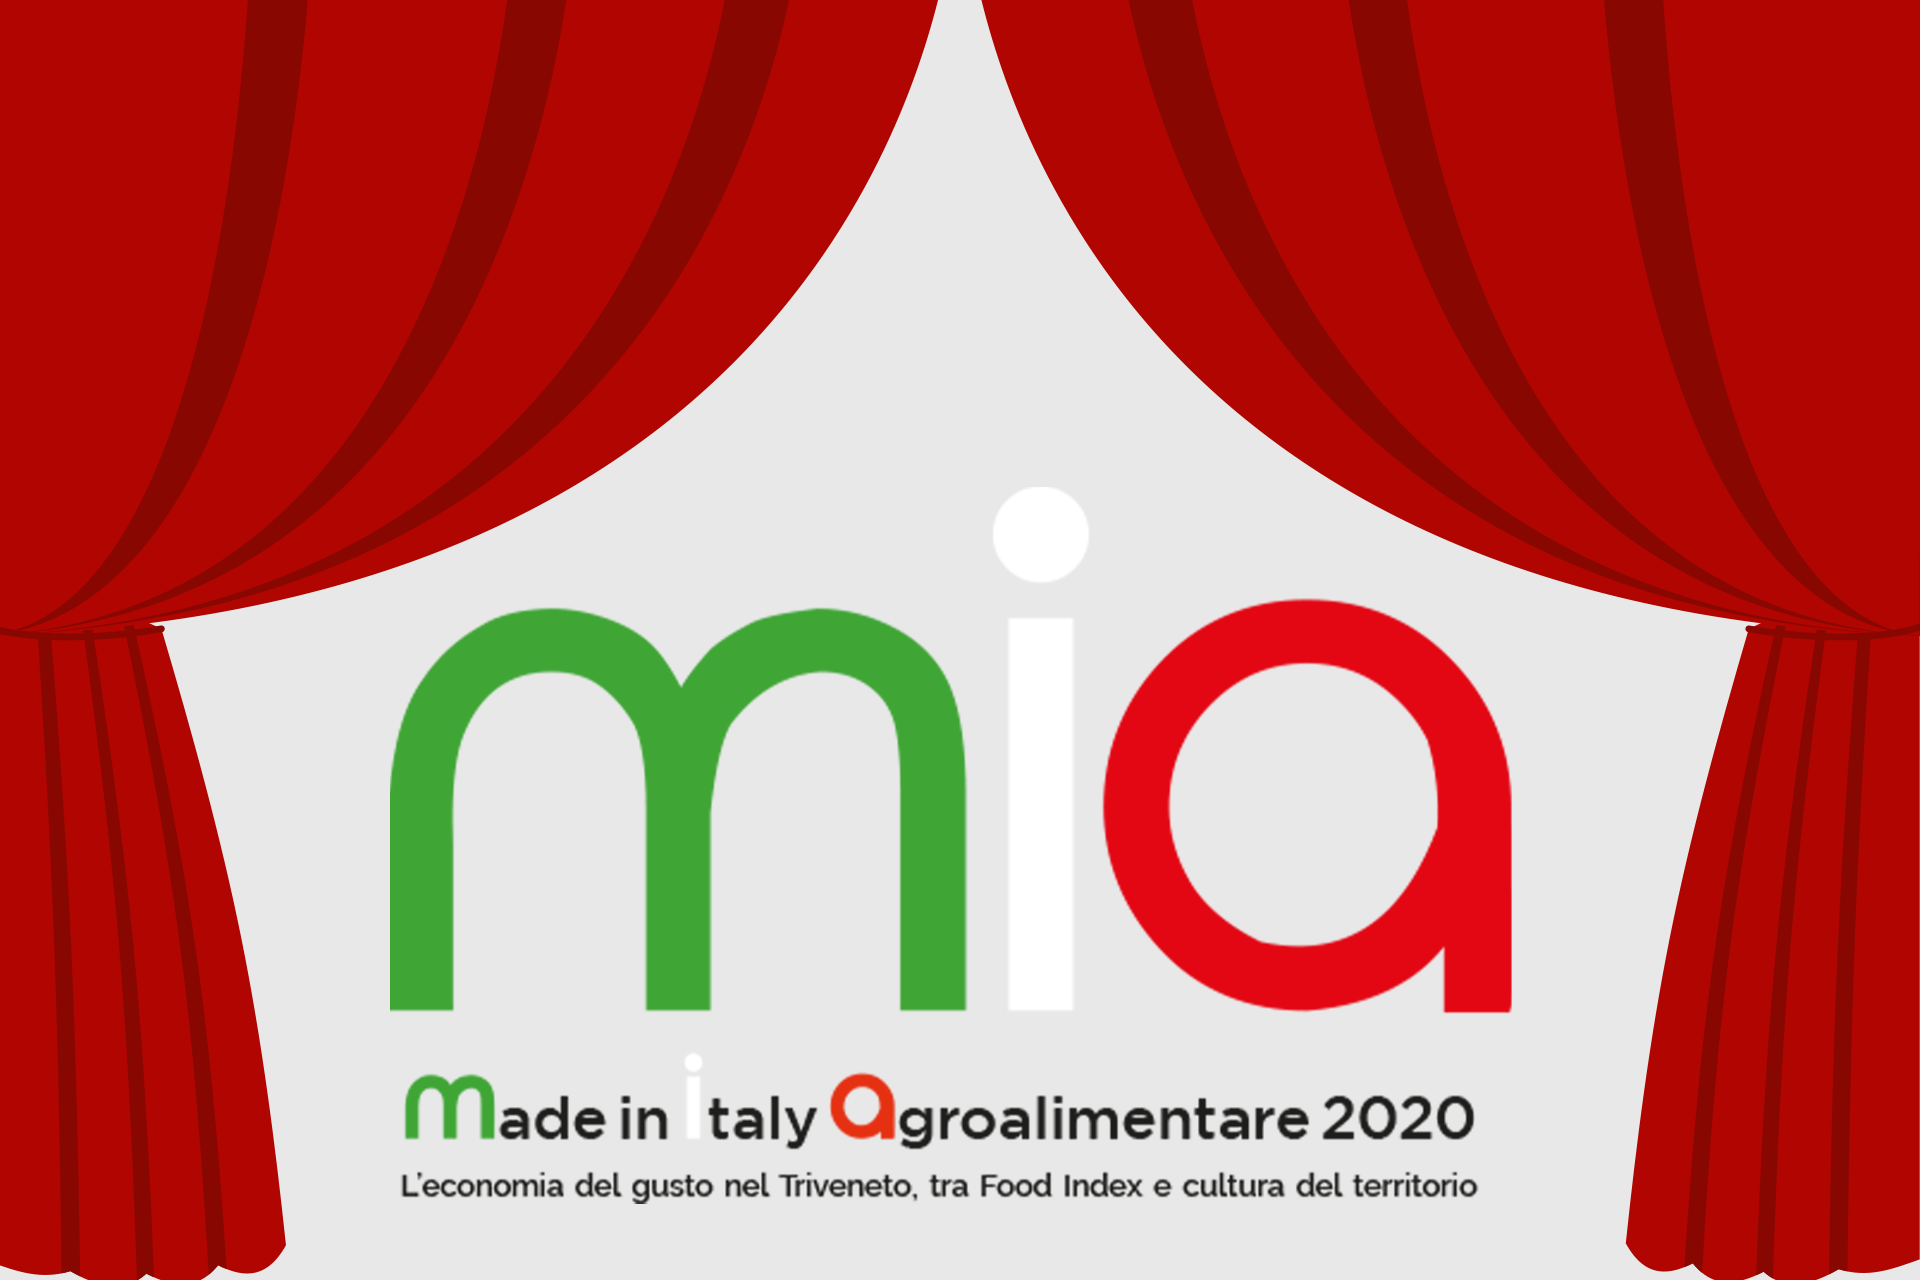 MIA - MADE IN ITALY AGROALIMENTARE 2020